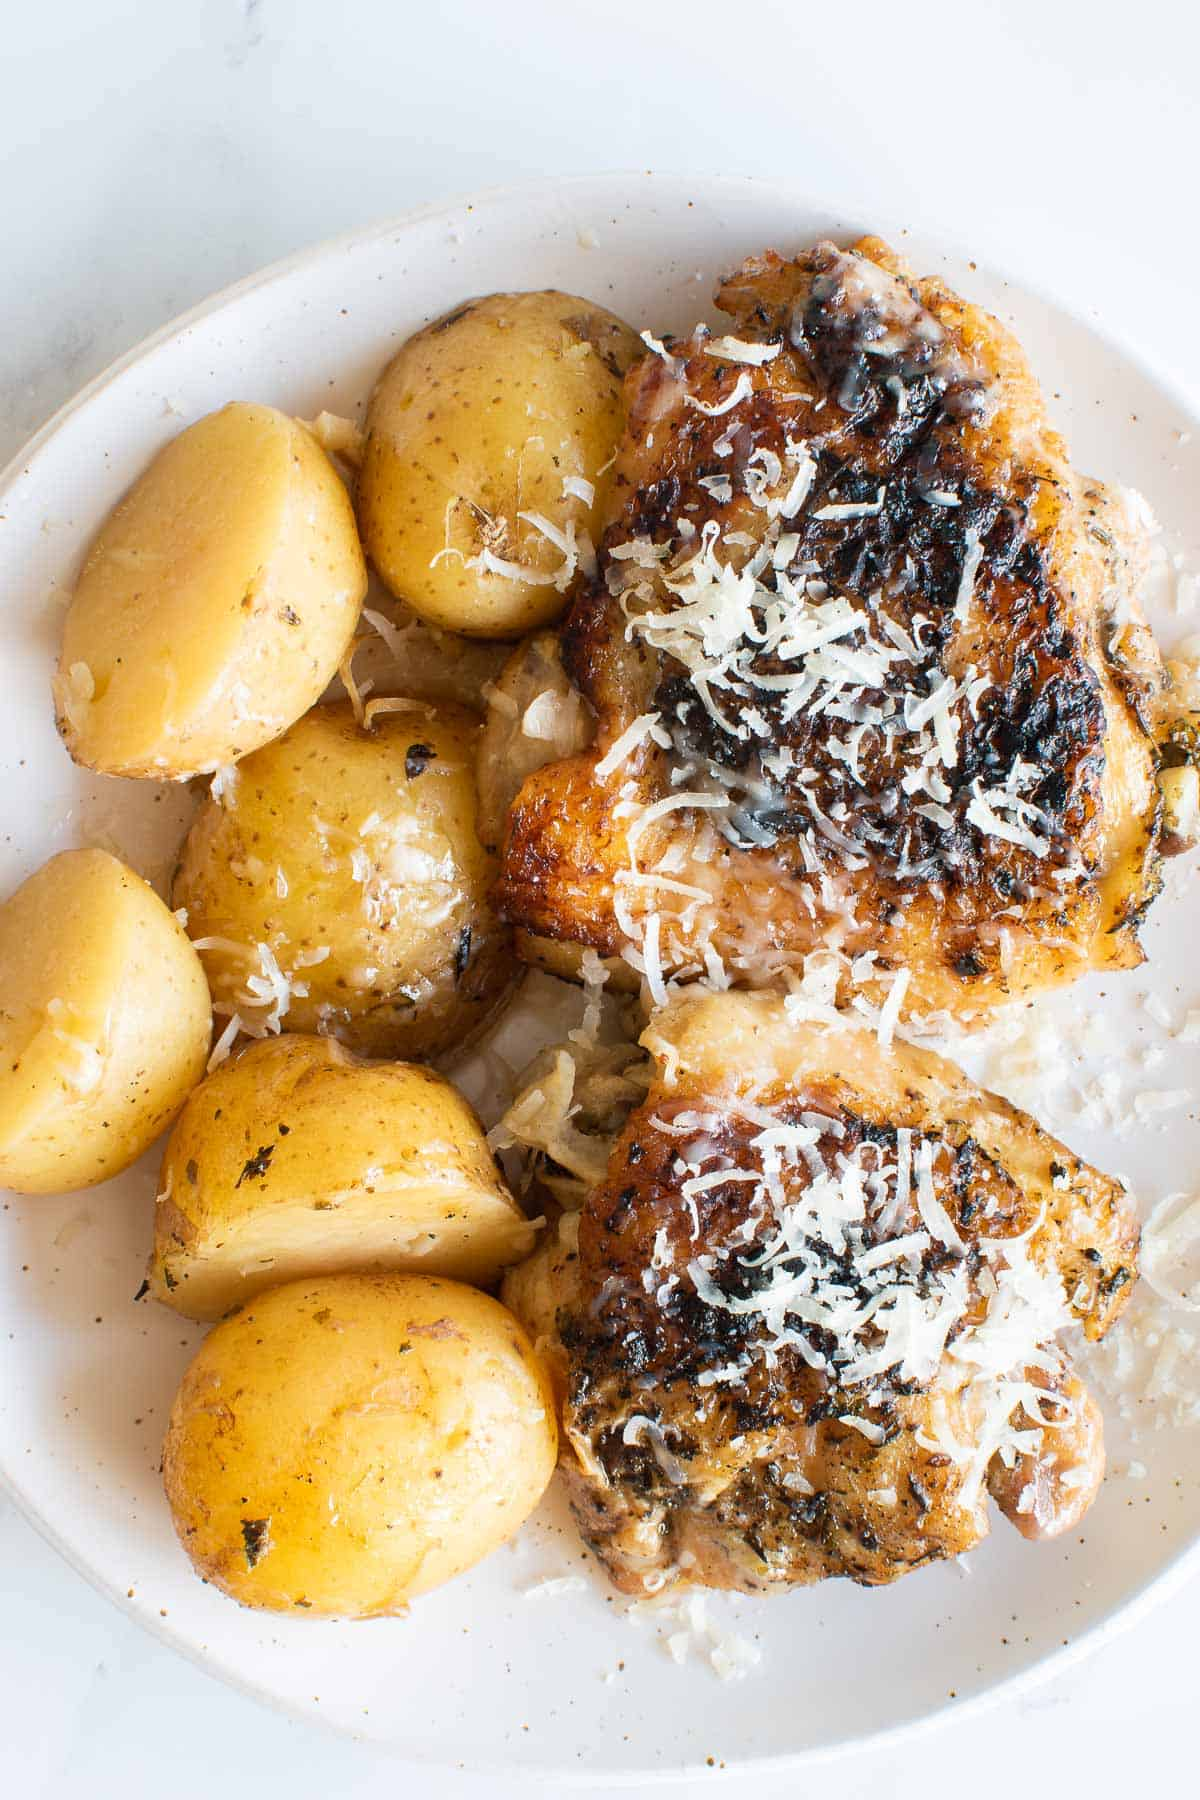 A plate of garlic Parmesan chicken and potatoes.